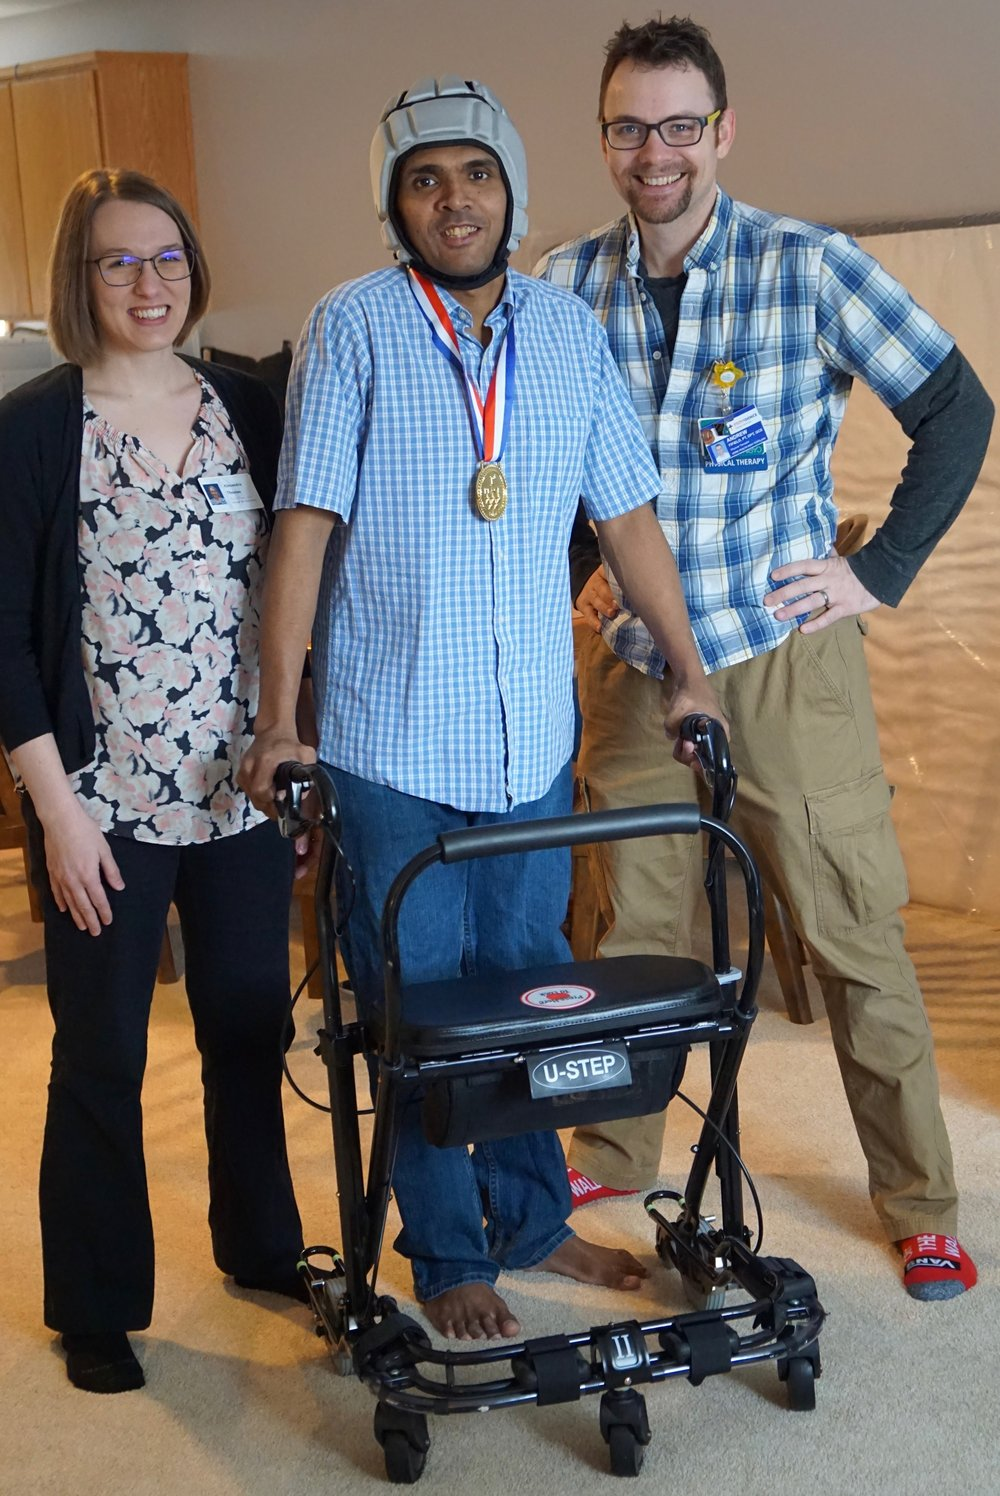 Thomas Shobith - with Physical therapist Andrew Fifield and Alexandra Thomas after winning his first challenge